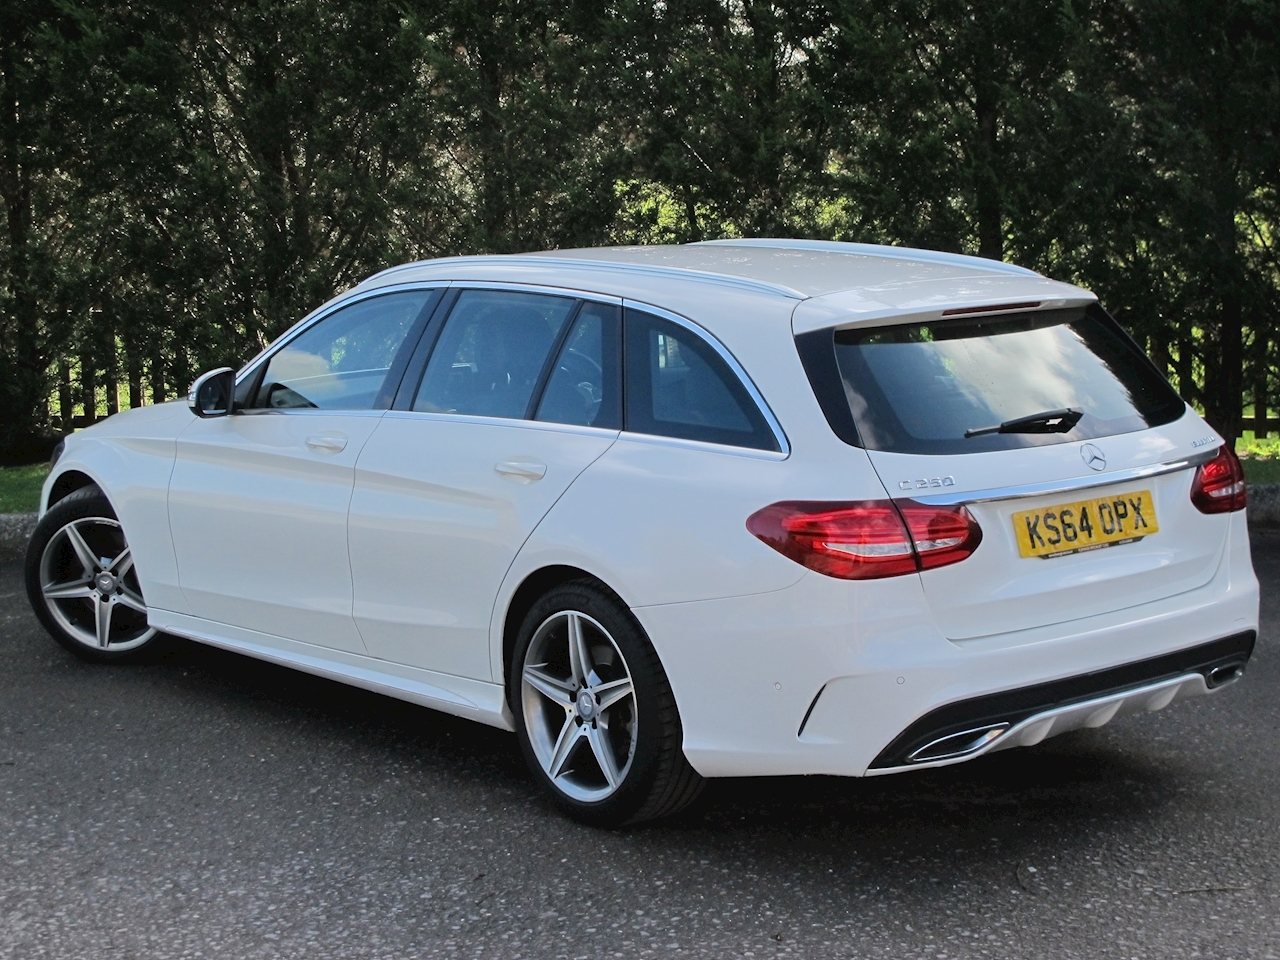 Mercedes-Benz C Class C250 Bluetec Amg Line Estate 2.1 Automatic Diesel